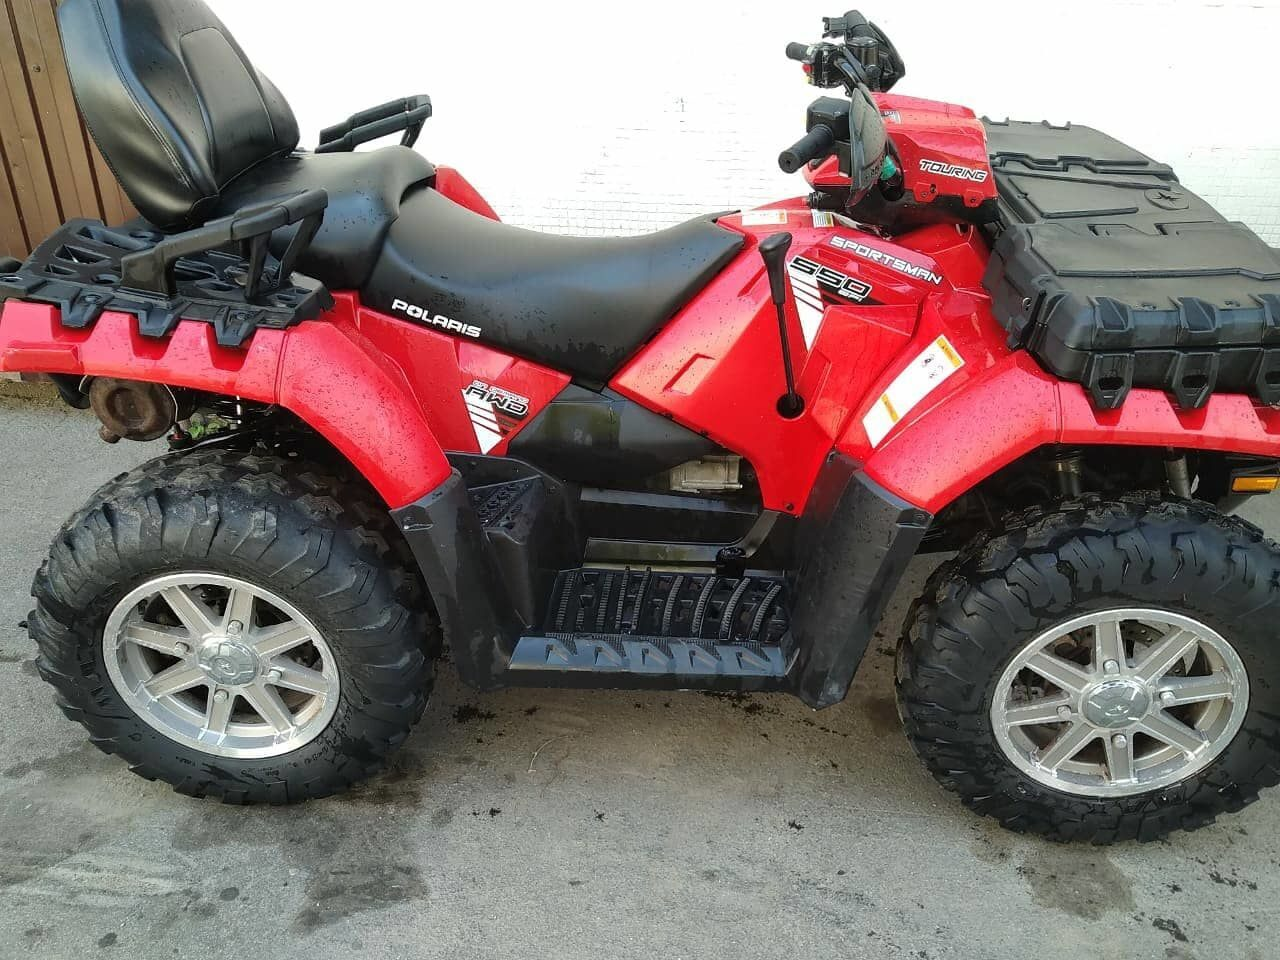 Polaris sportsman 550 tour